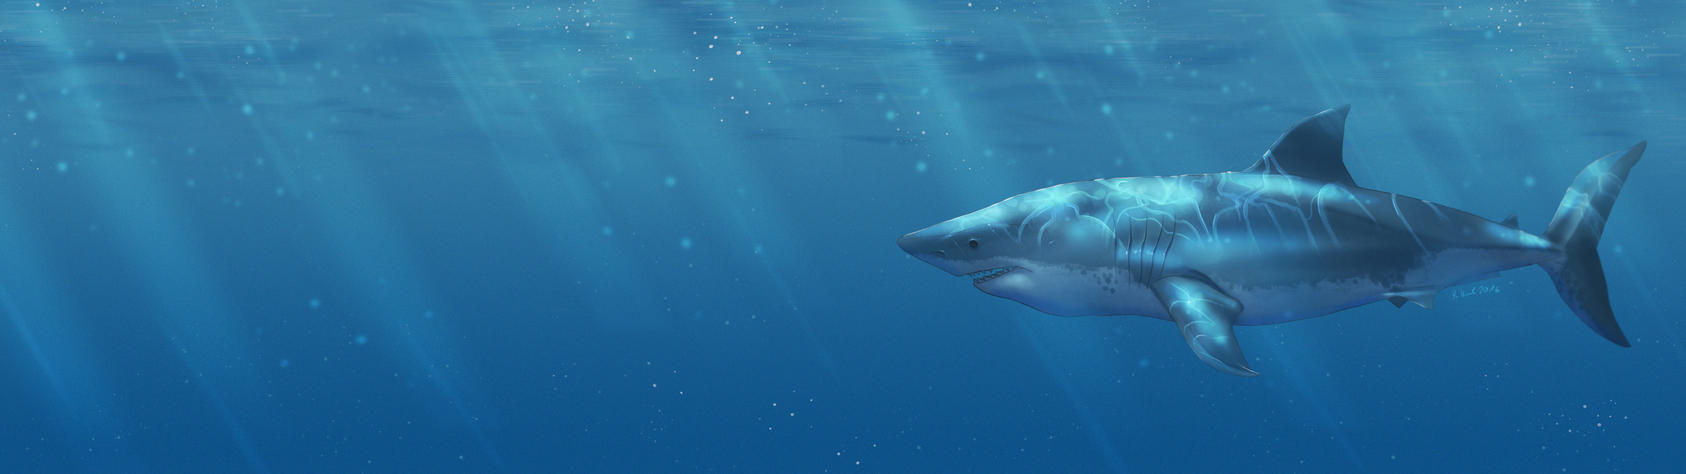 Hai Shark Dual Screen Wallpaper 3840x2160 By Holzeisenbahn